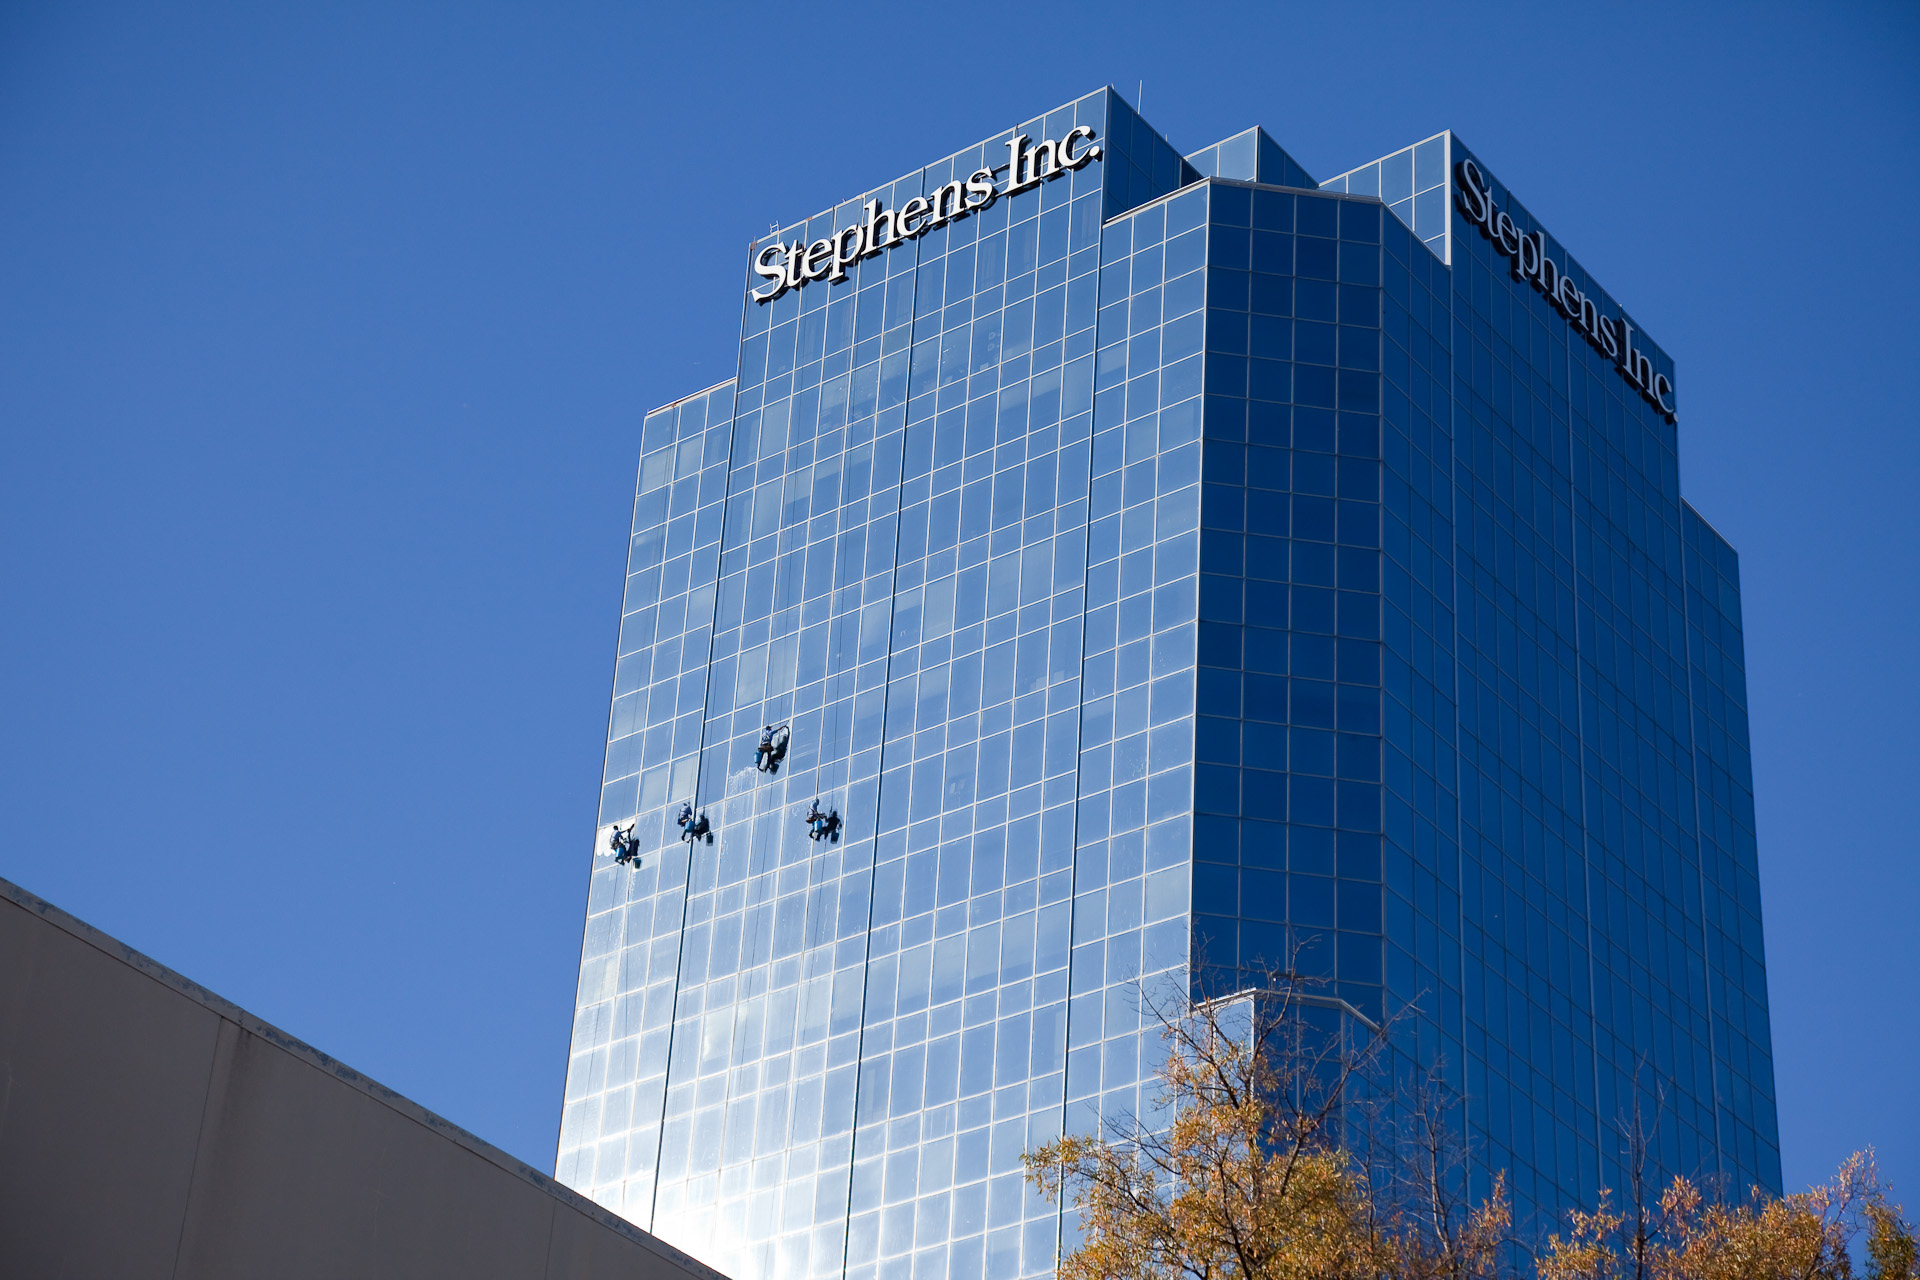 Fall Cleaning at the Stephens Building, Little Rock, Arkansas